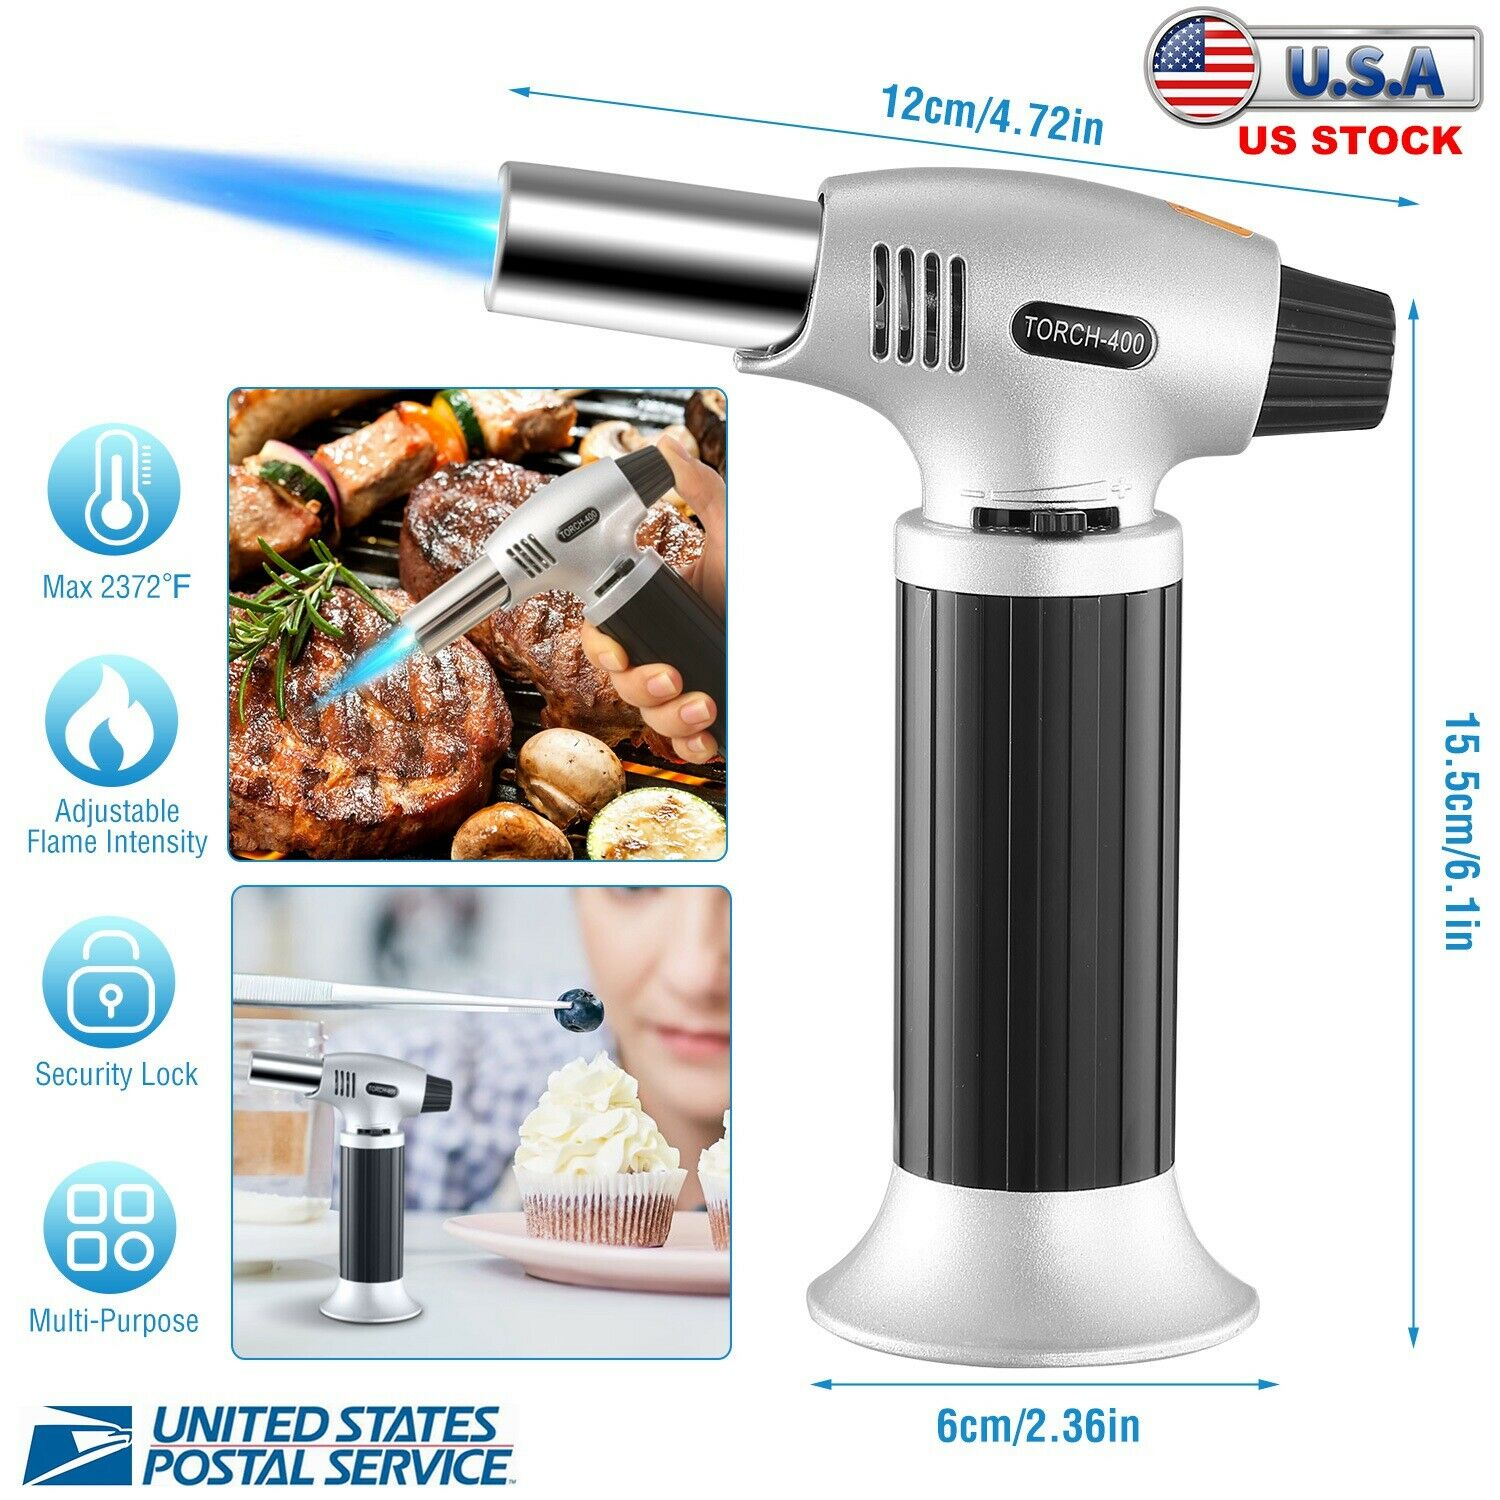 Semlos Butane Torch Professional Kitchen Cooking Torch with Adjustable Flame Refillable Blow Torch Lighters Creme Brulee, for Crafts Butane Gas Not Included